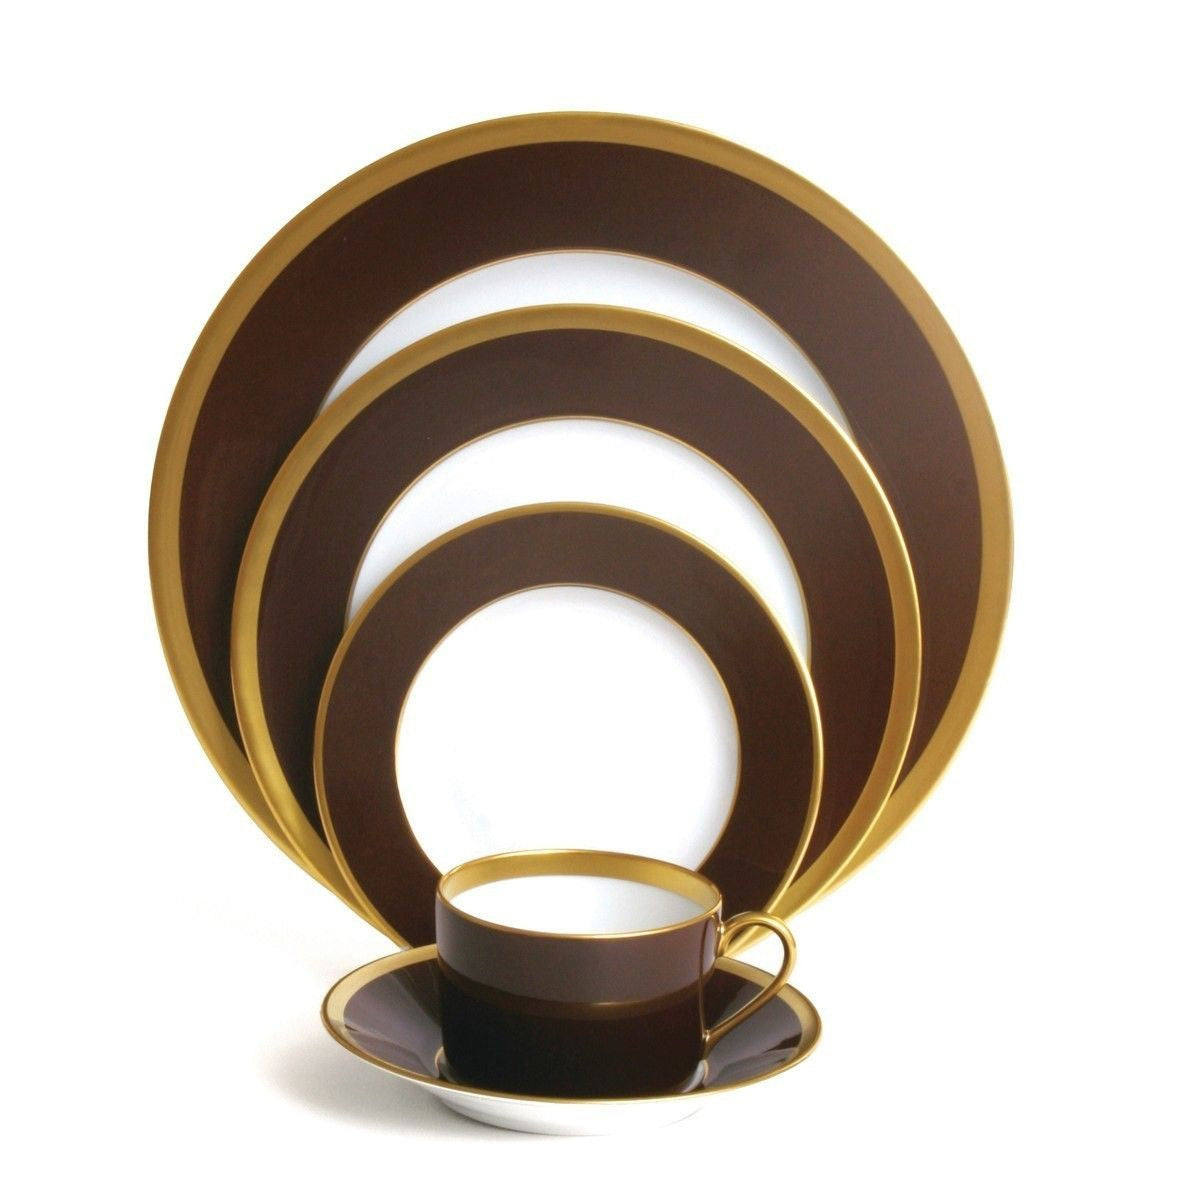 L. De Chine Chocolate Gold Dessert Plate